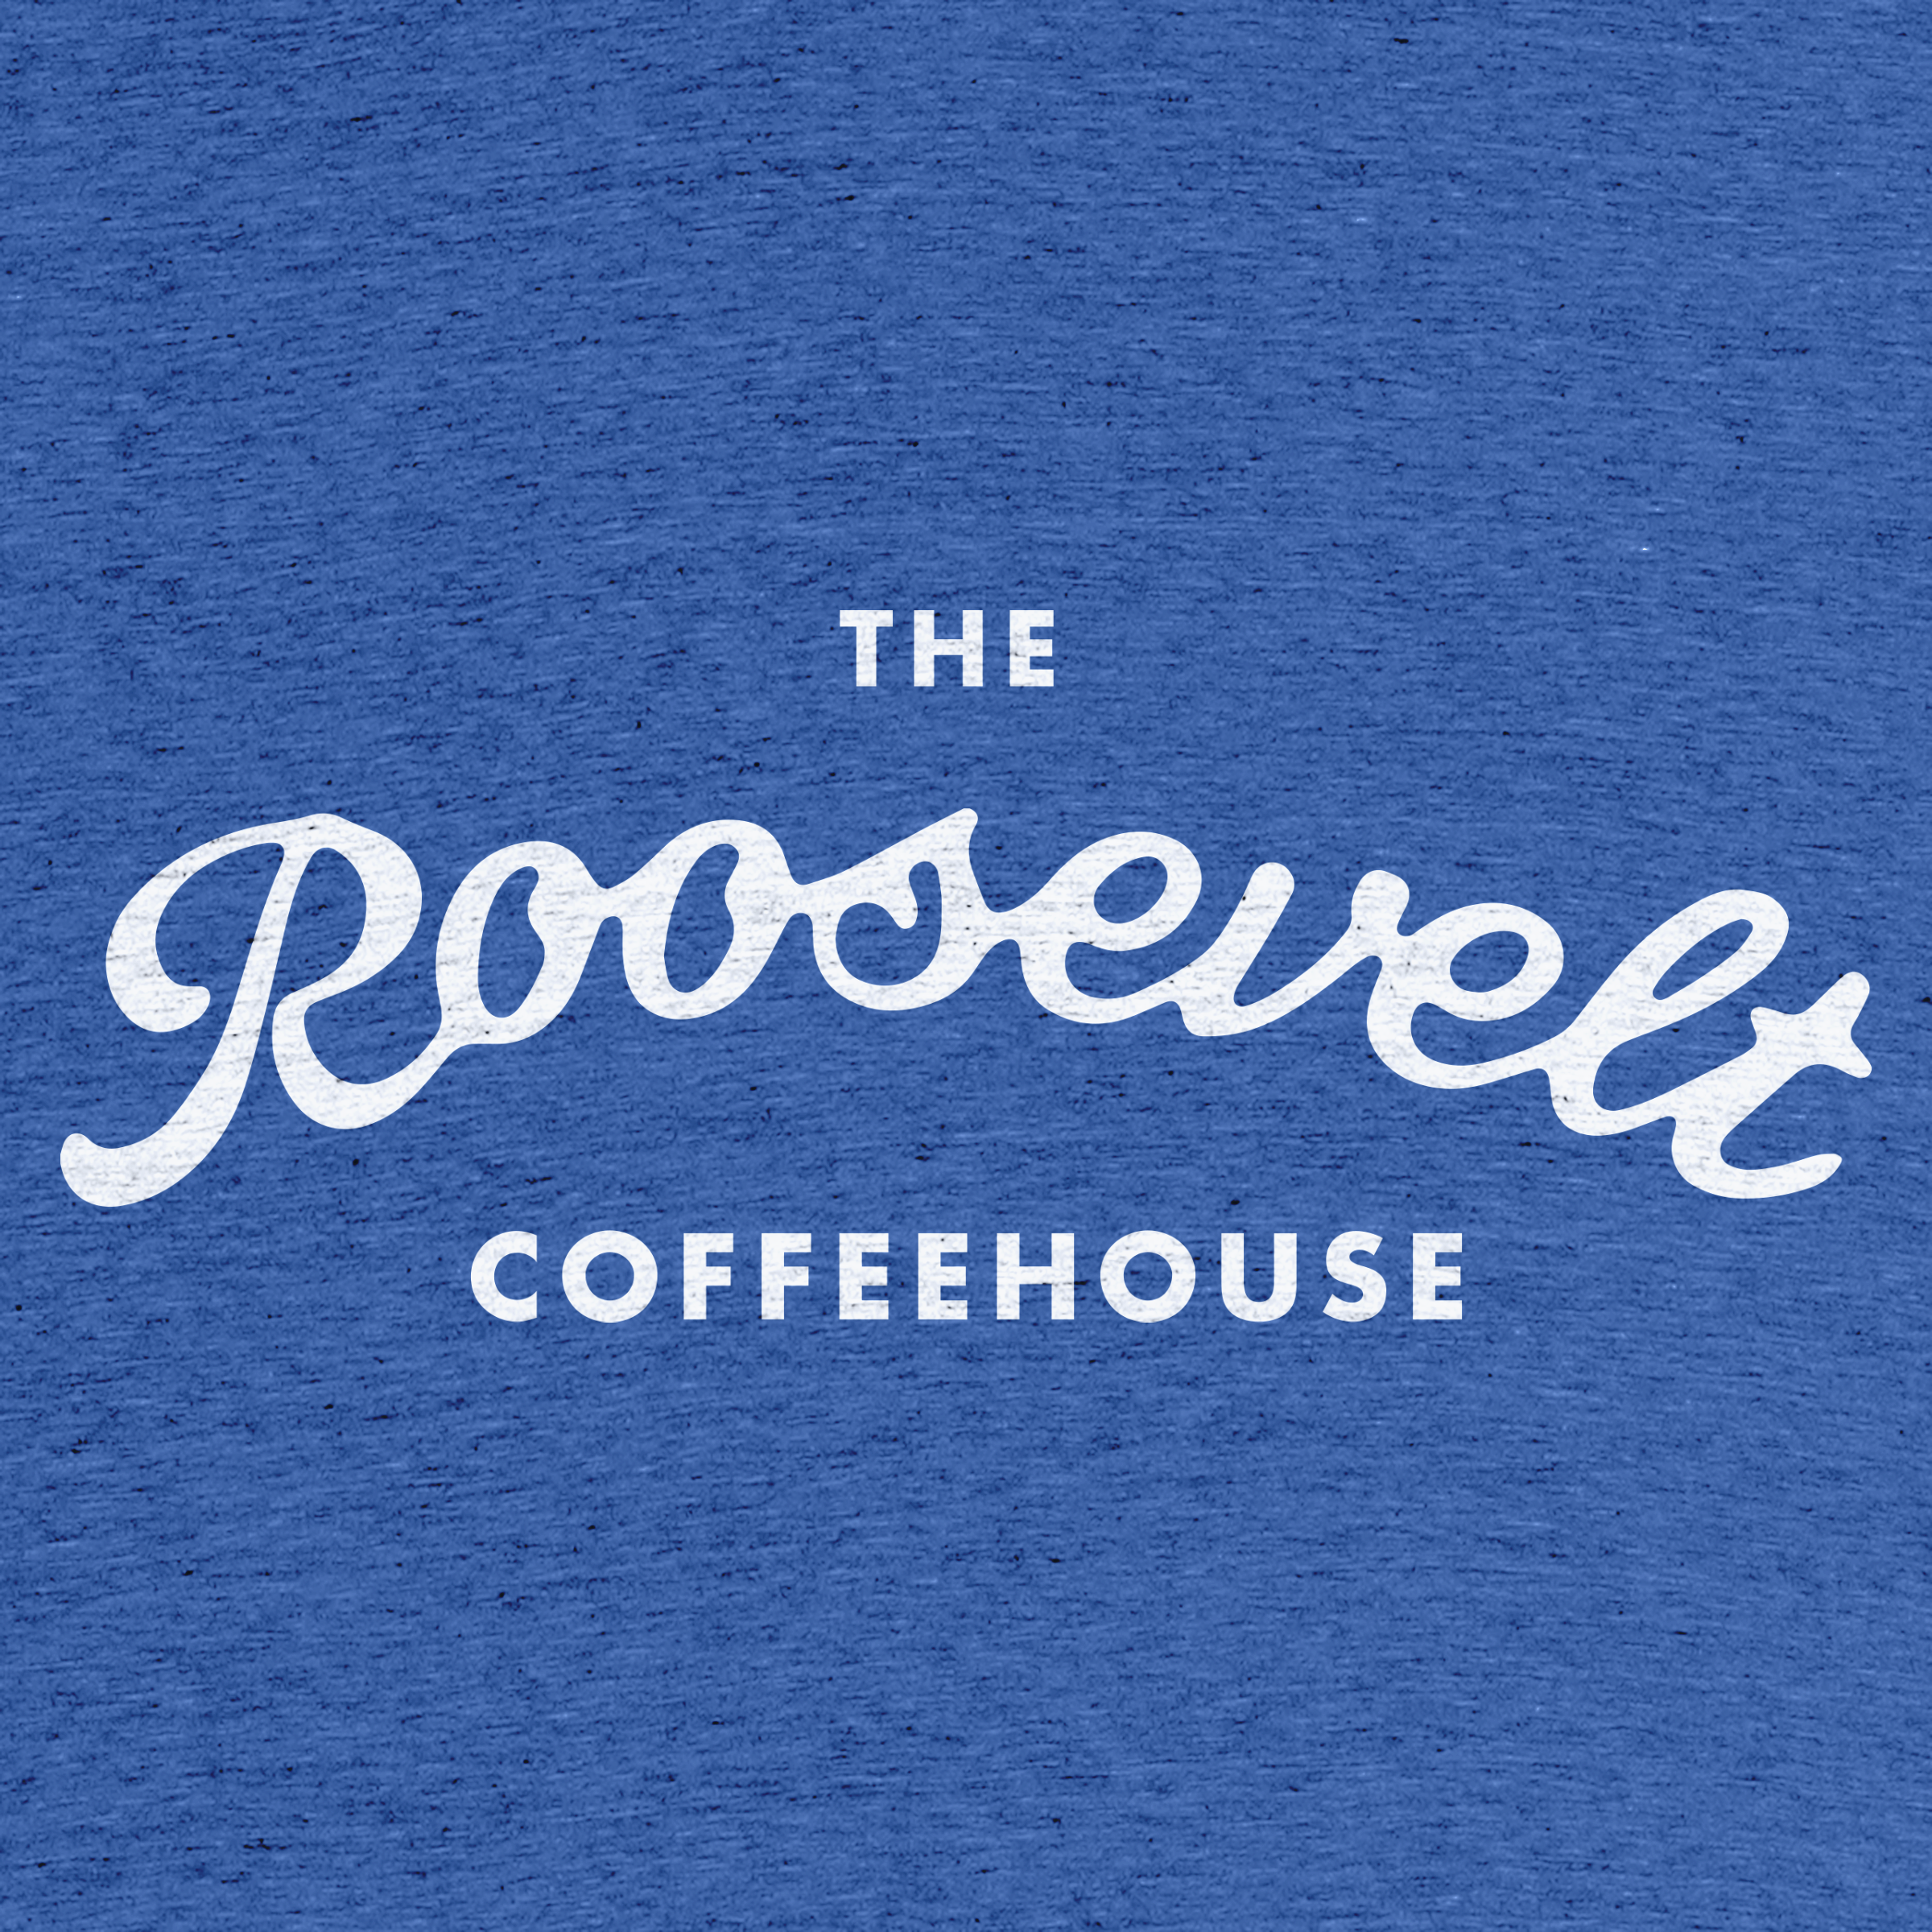 The Roosevelt Coffeehouse Detail